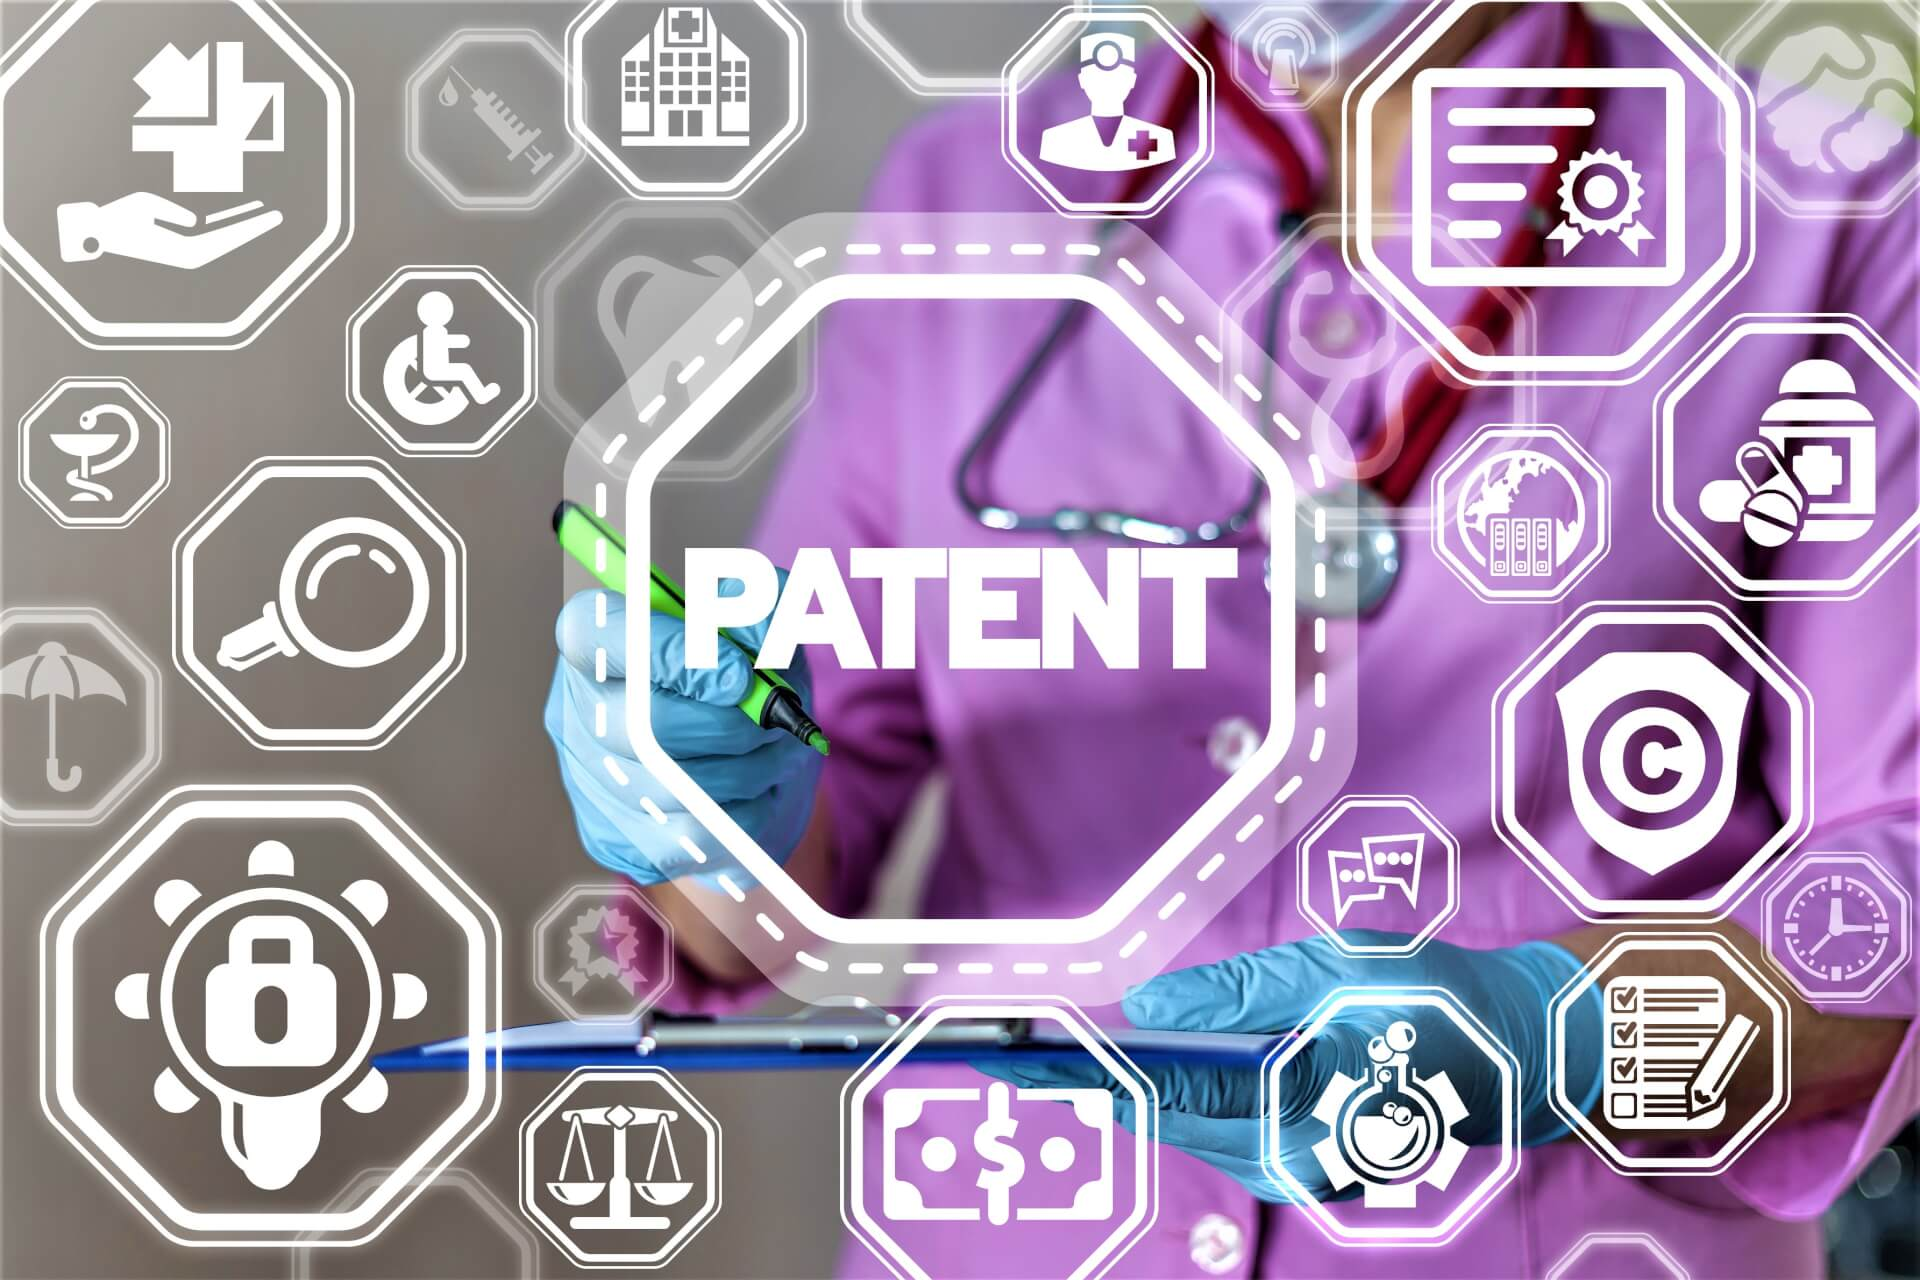 pharmaceutical patent edited - Patterson Intellectual Property Law